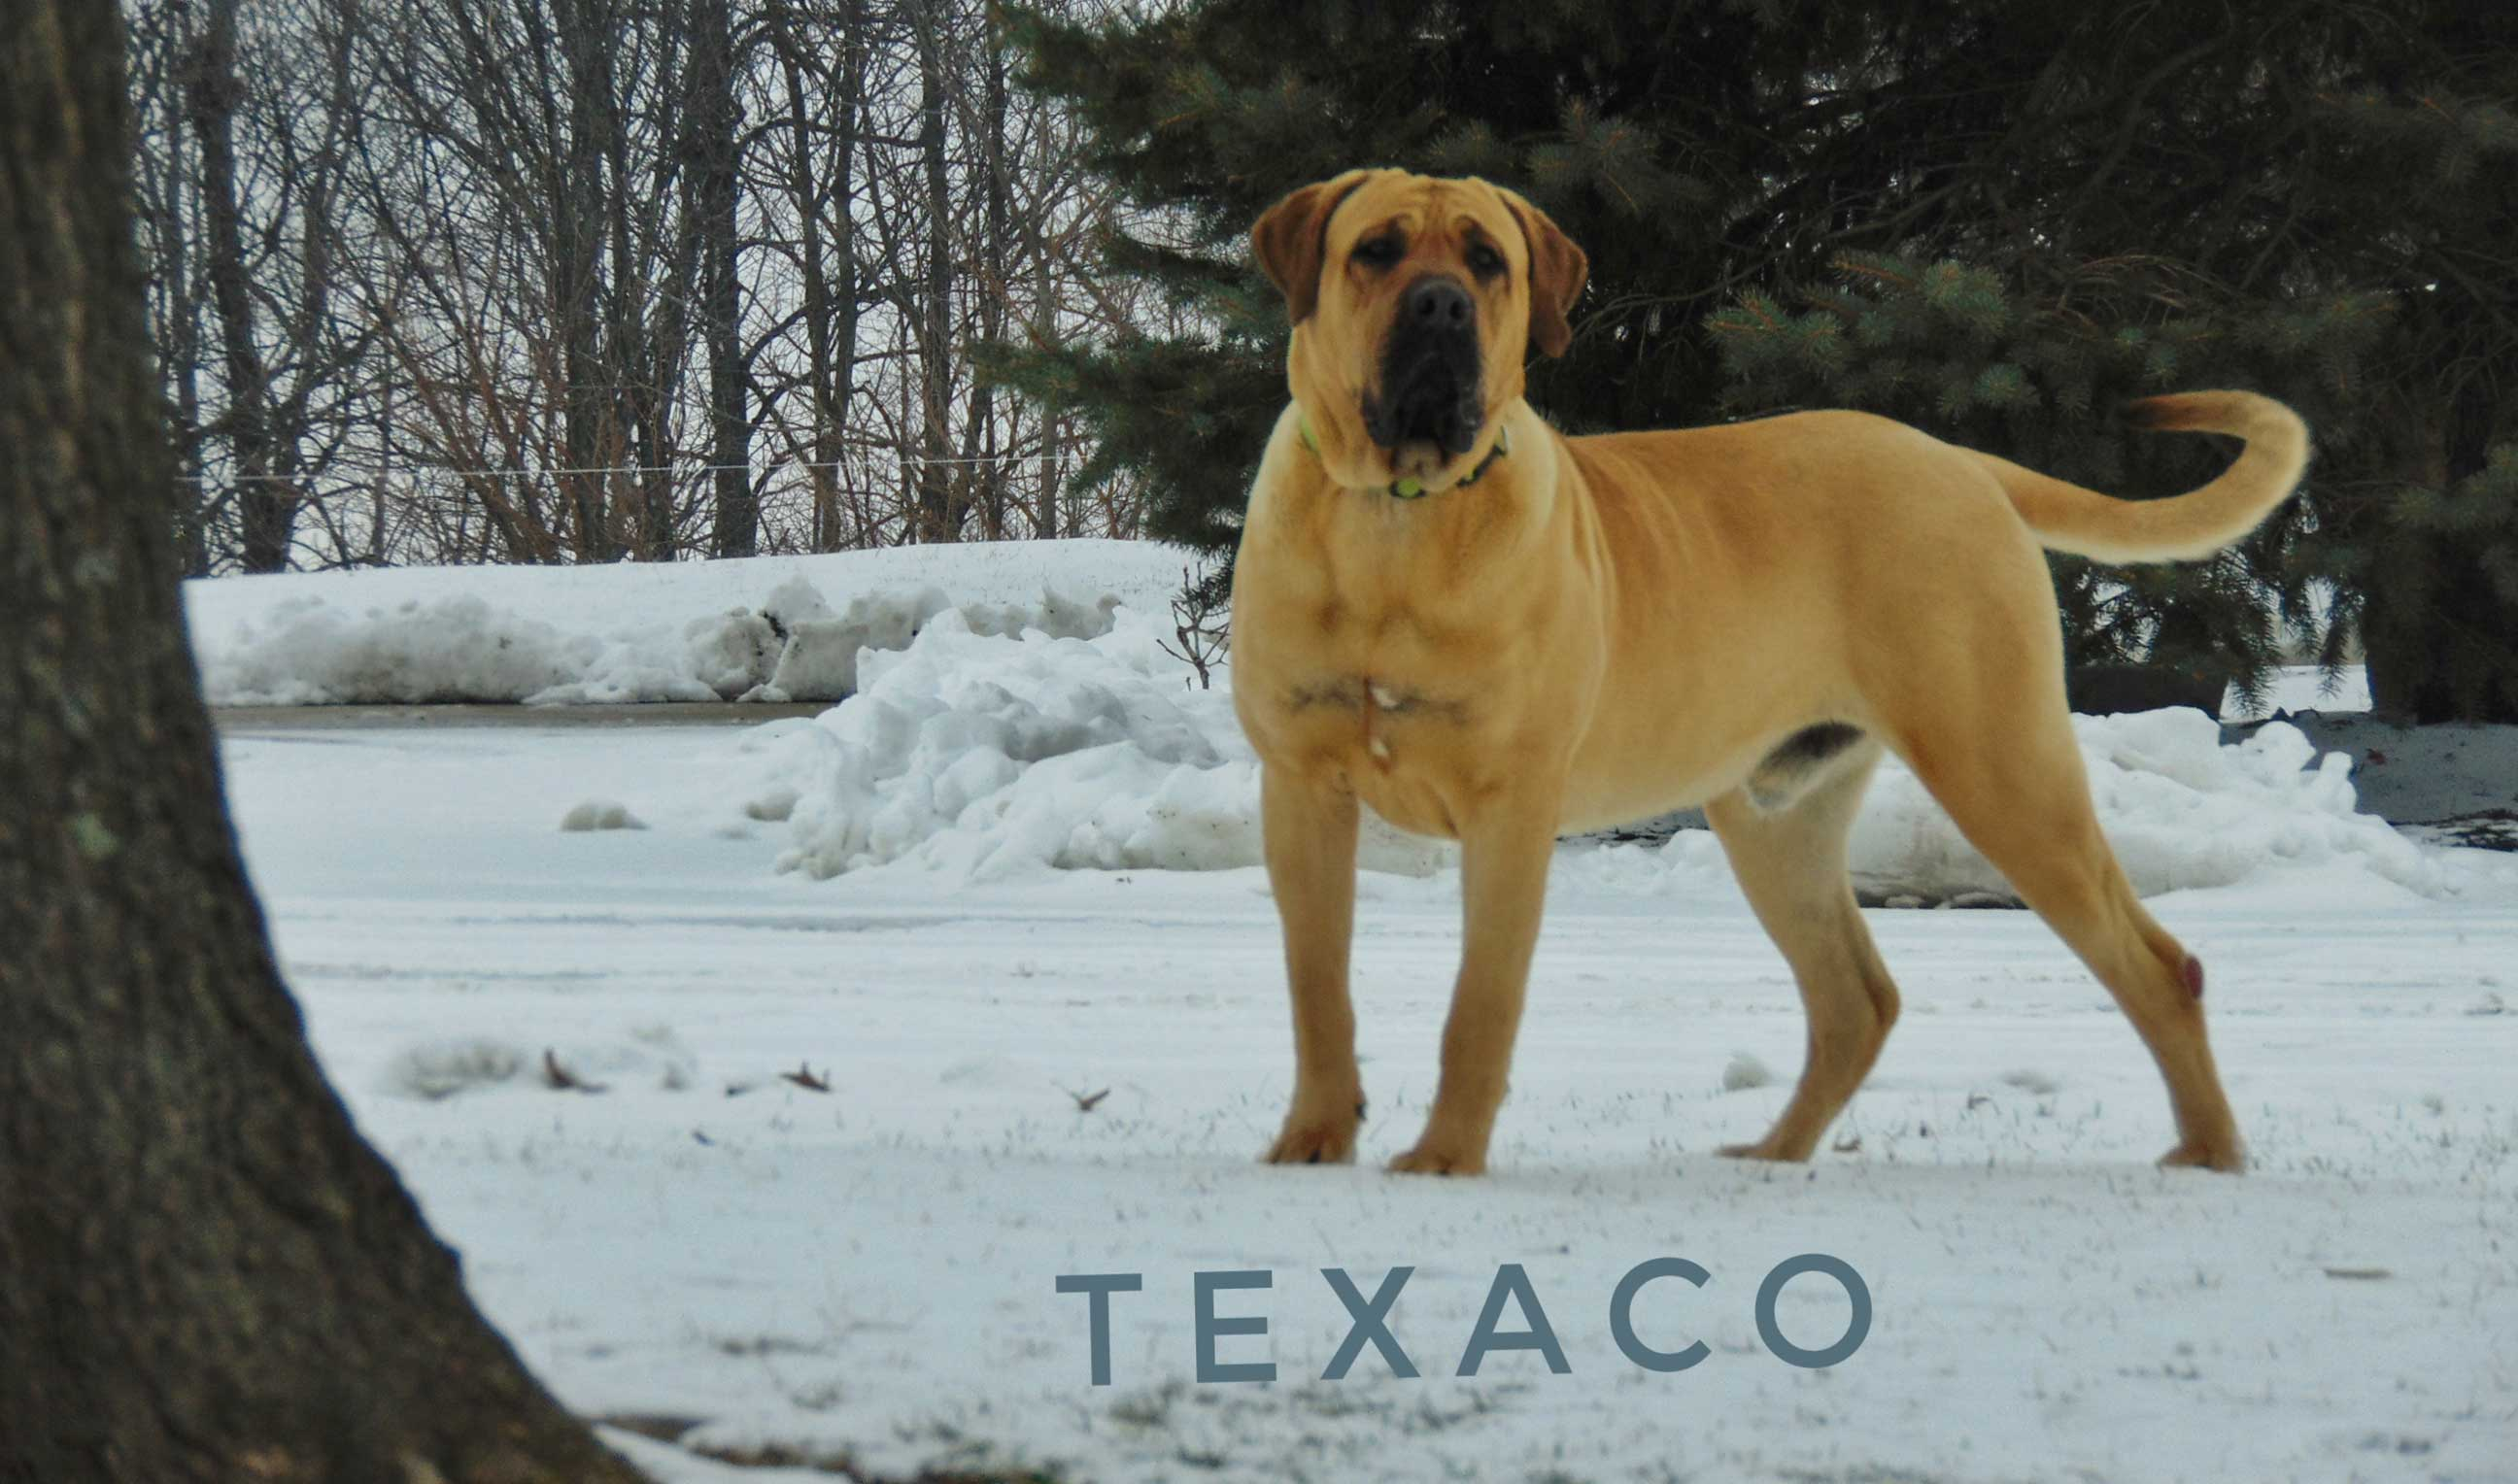 A tan dog standing in the snow beside a tree